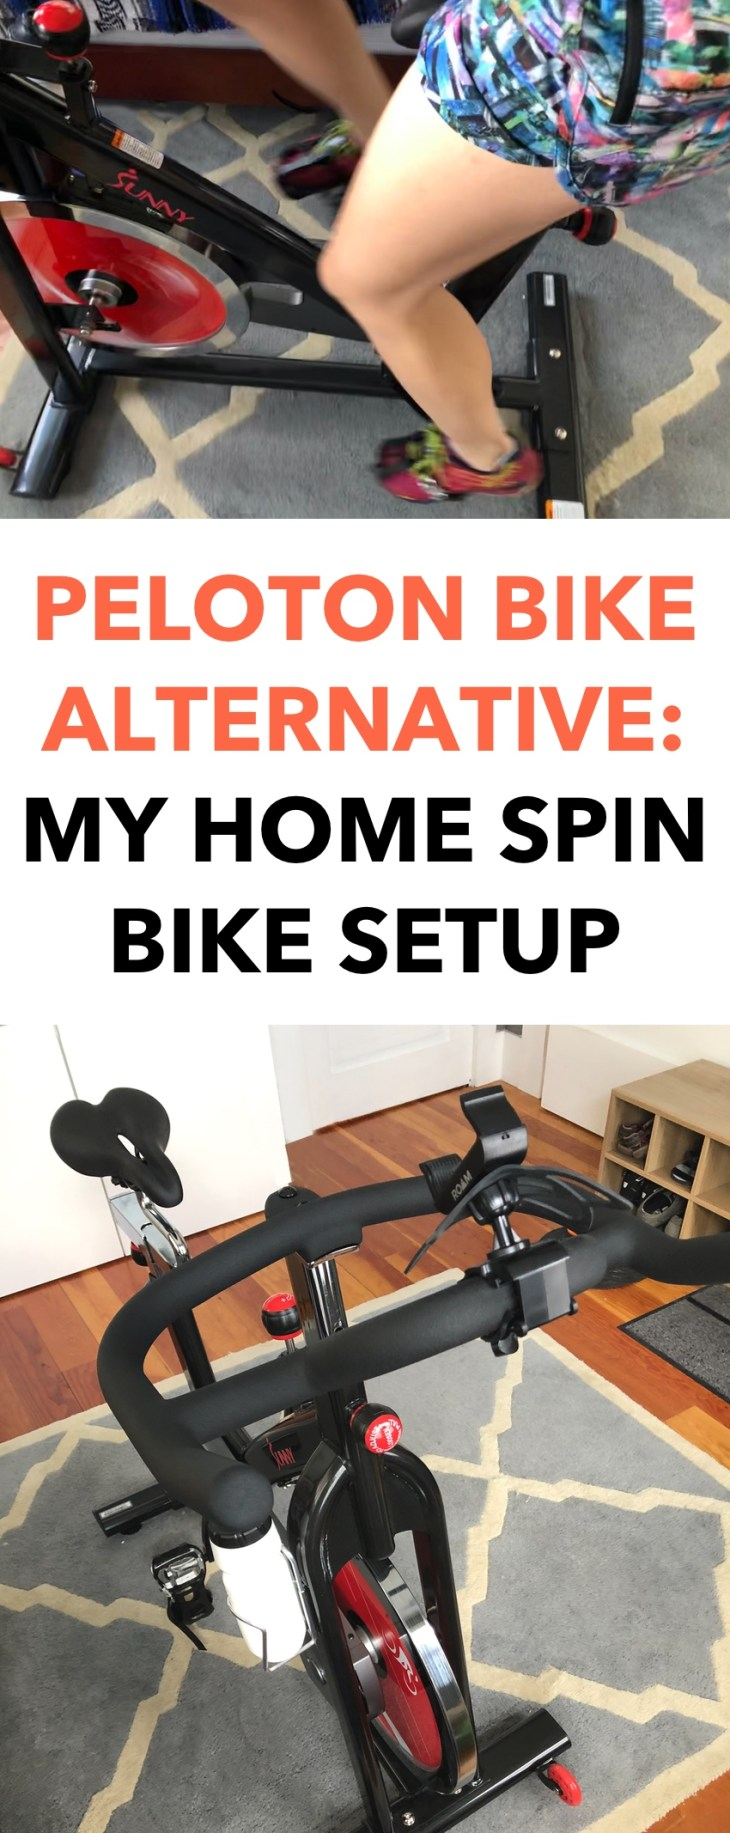 peloton alternative, at home spin bike set up home gym